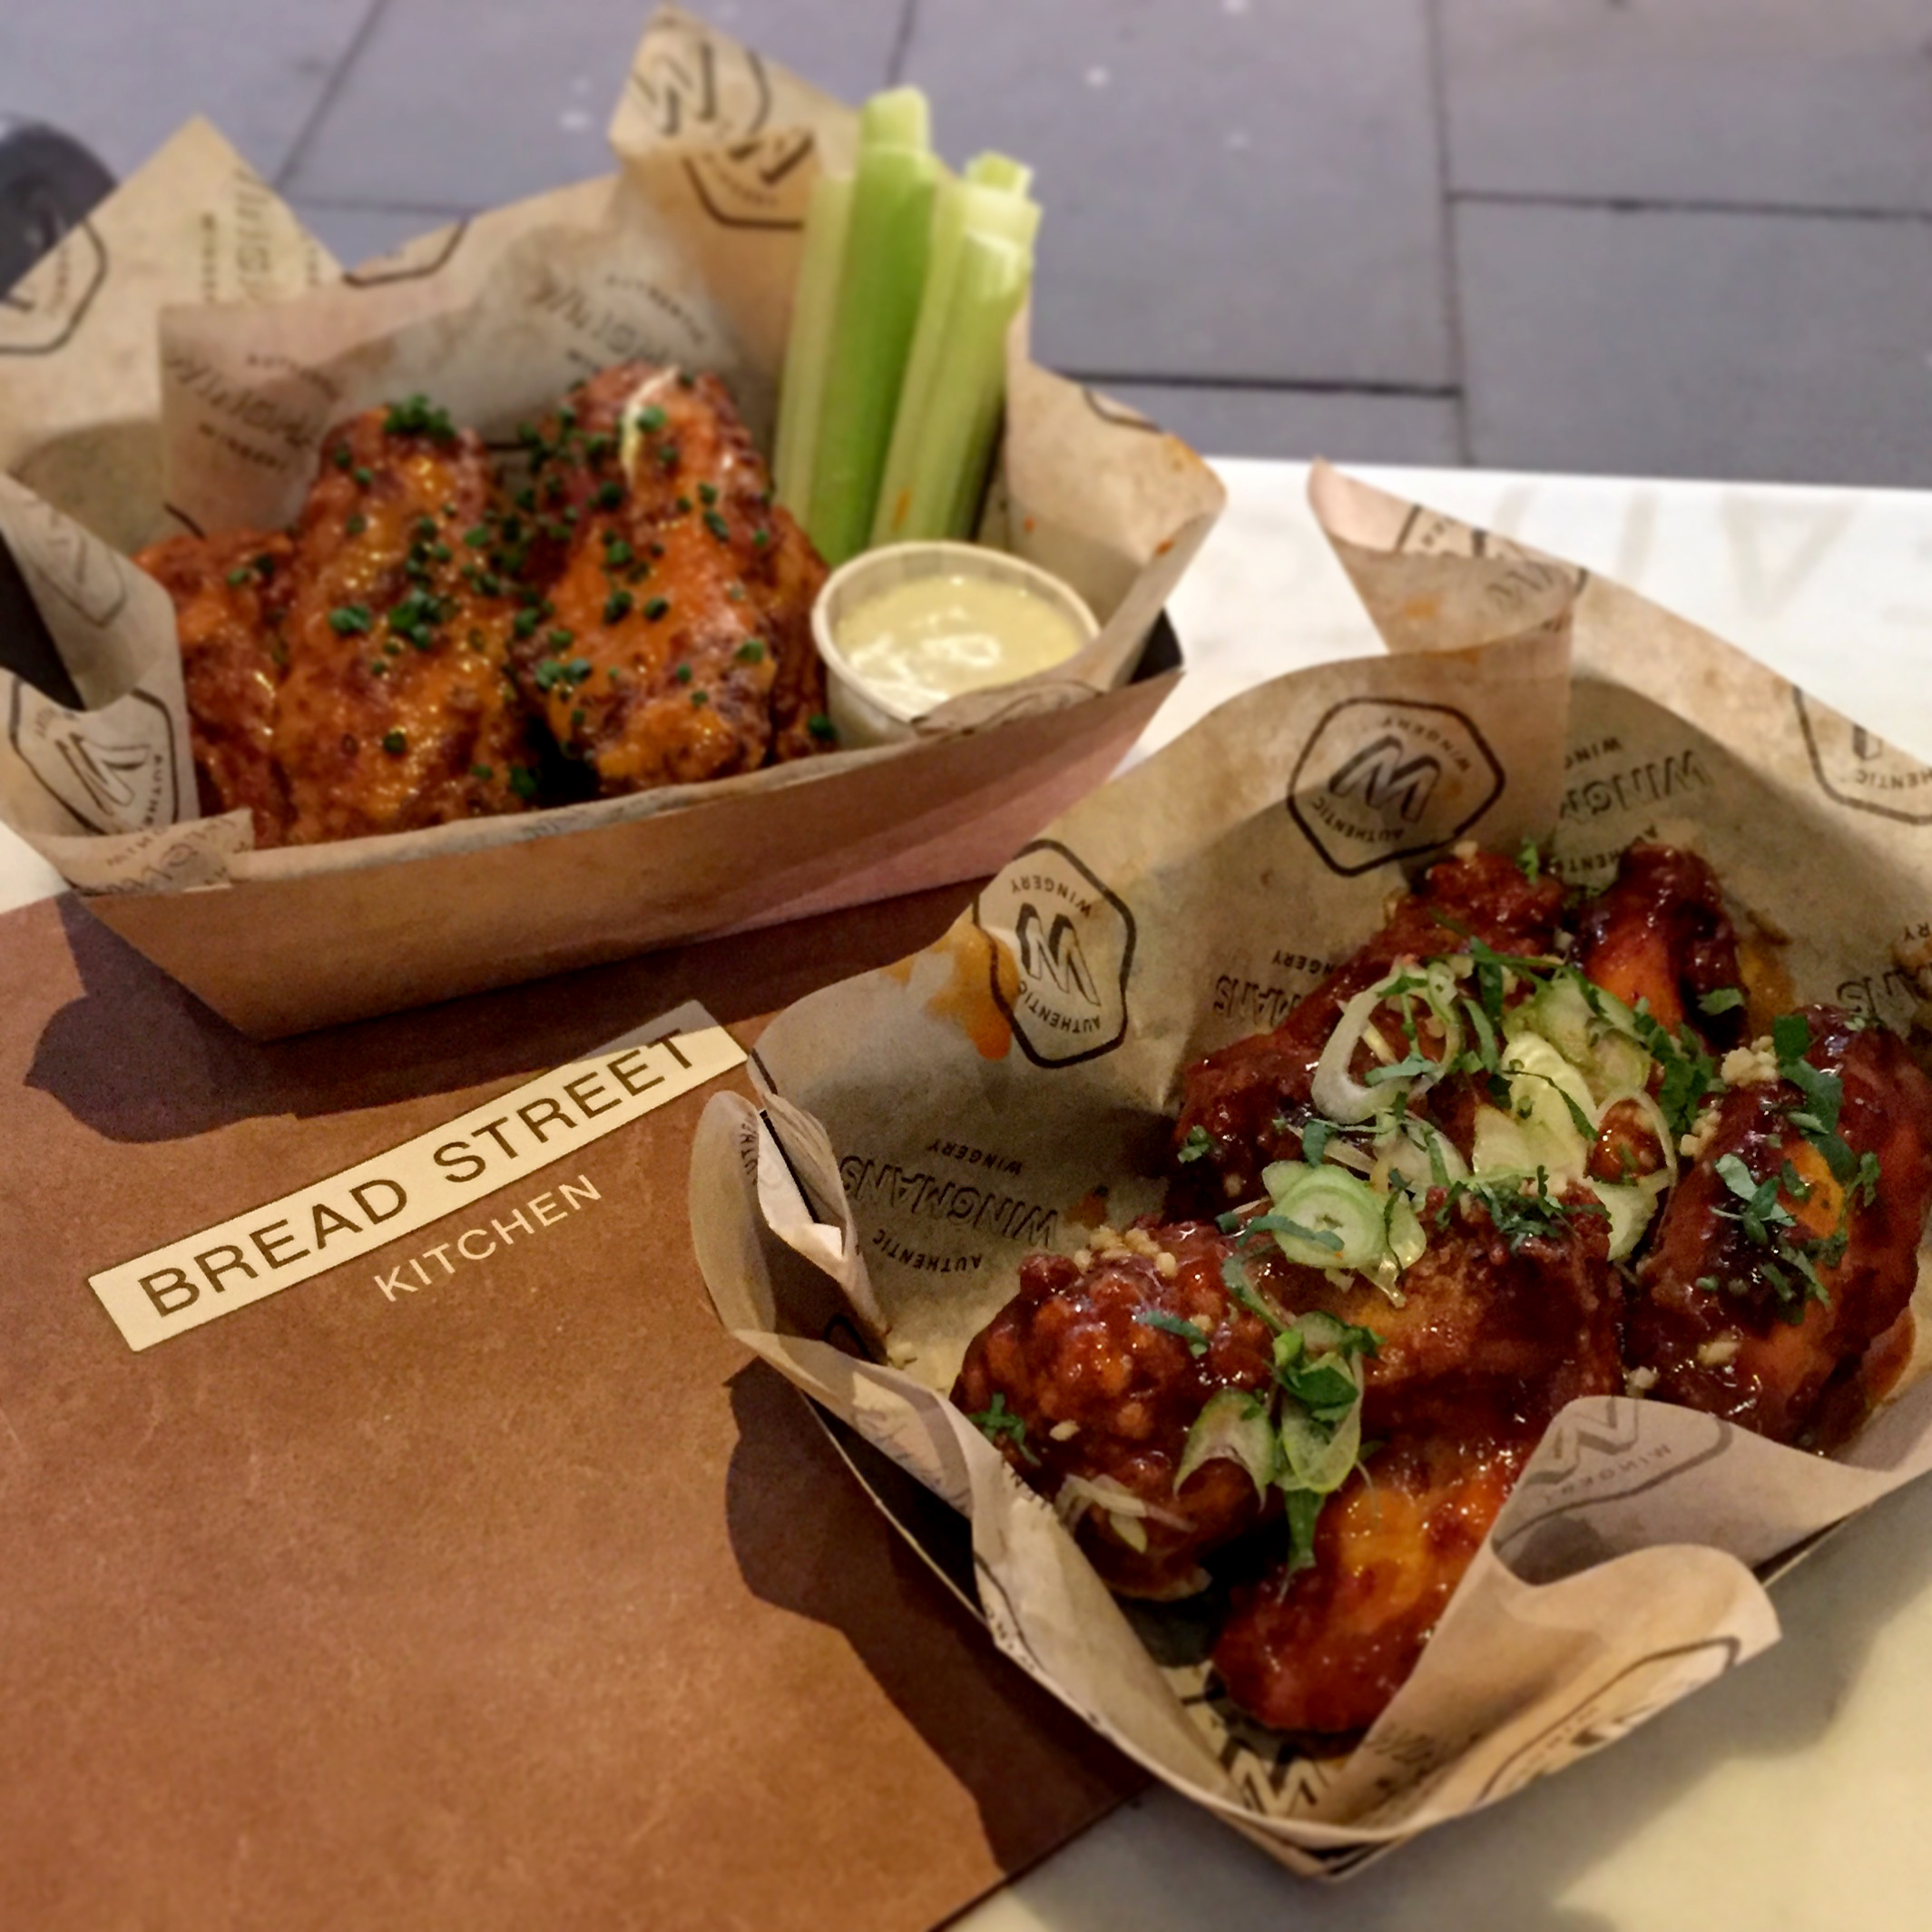 Bread street gives you wings wingmans bread st bar sessions for Food bar kitchen jkl